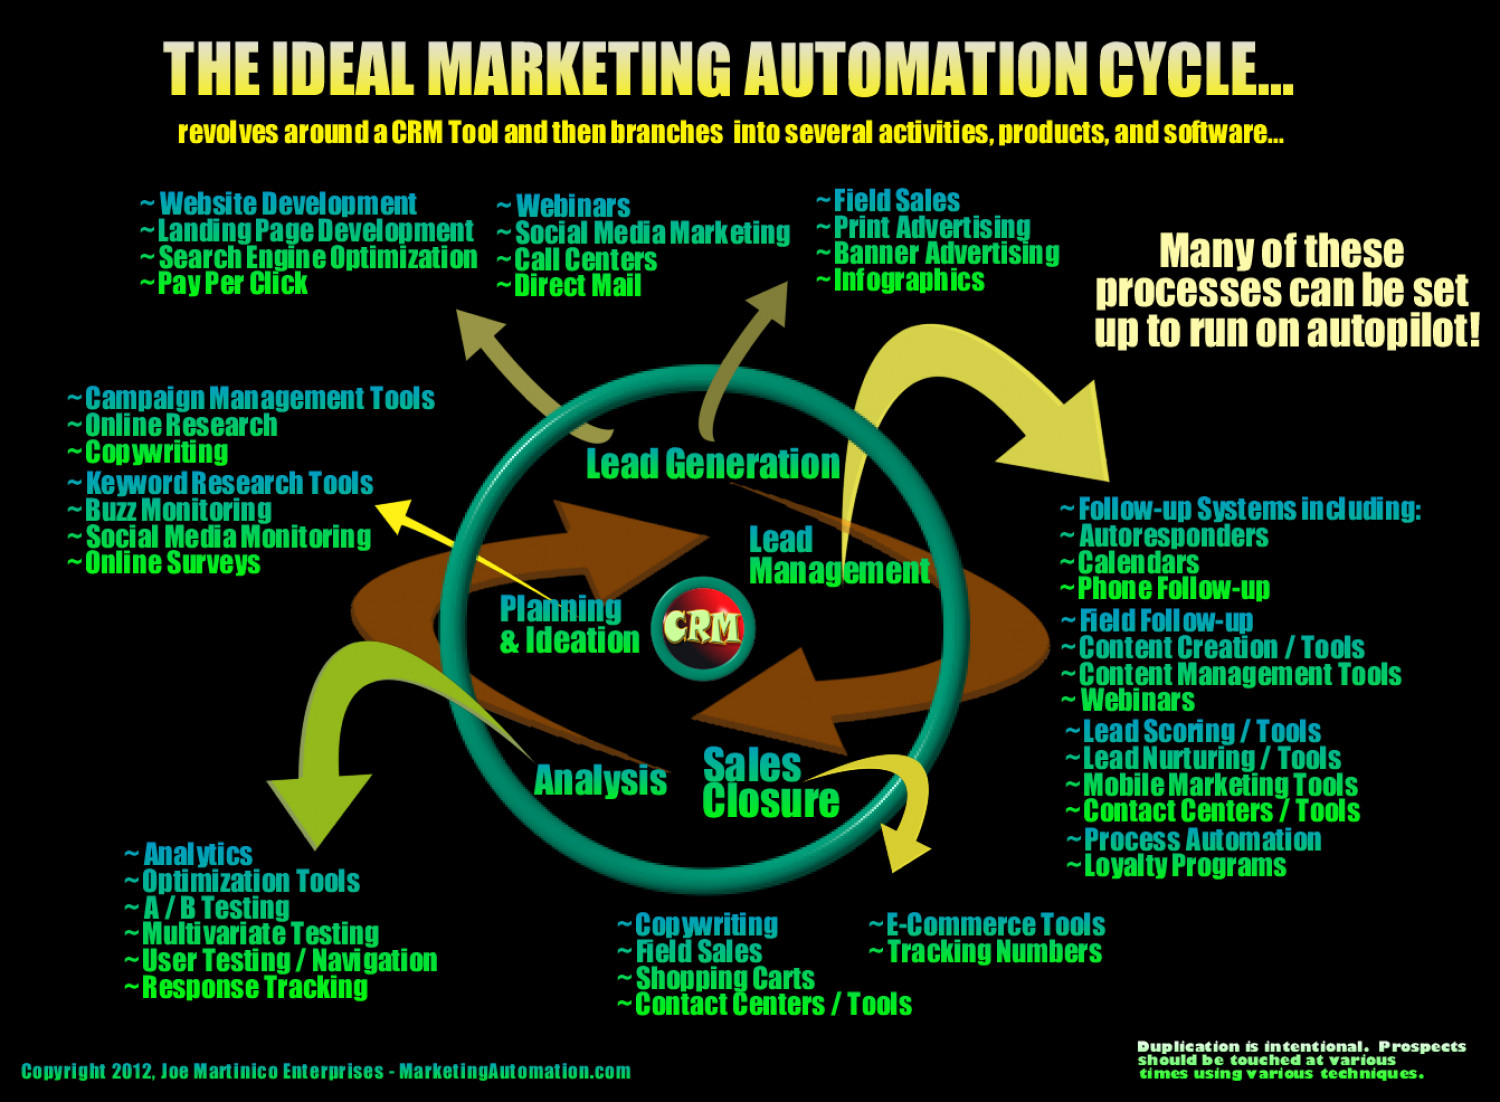 The Ideal Marketing Automation Cycle Infographic